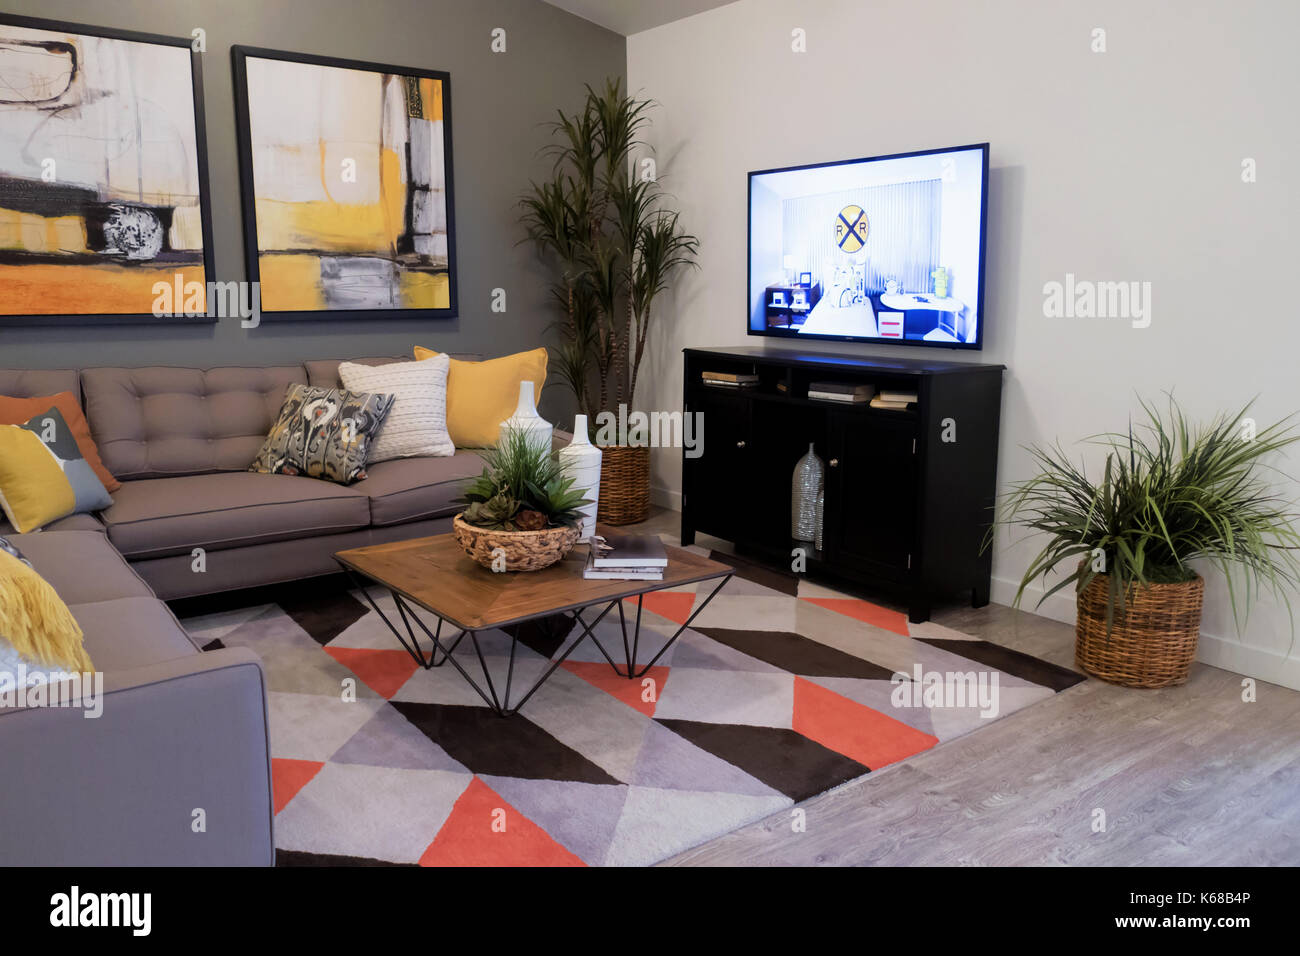 Fabulous A Gray Sectional Couch On A Colorful Rug Near A Tv Stand And Creativecarmelina Interior Chair Design Creativecarmelinacom